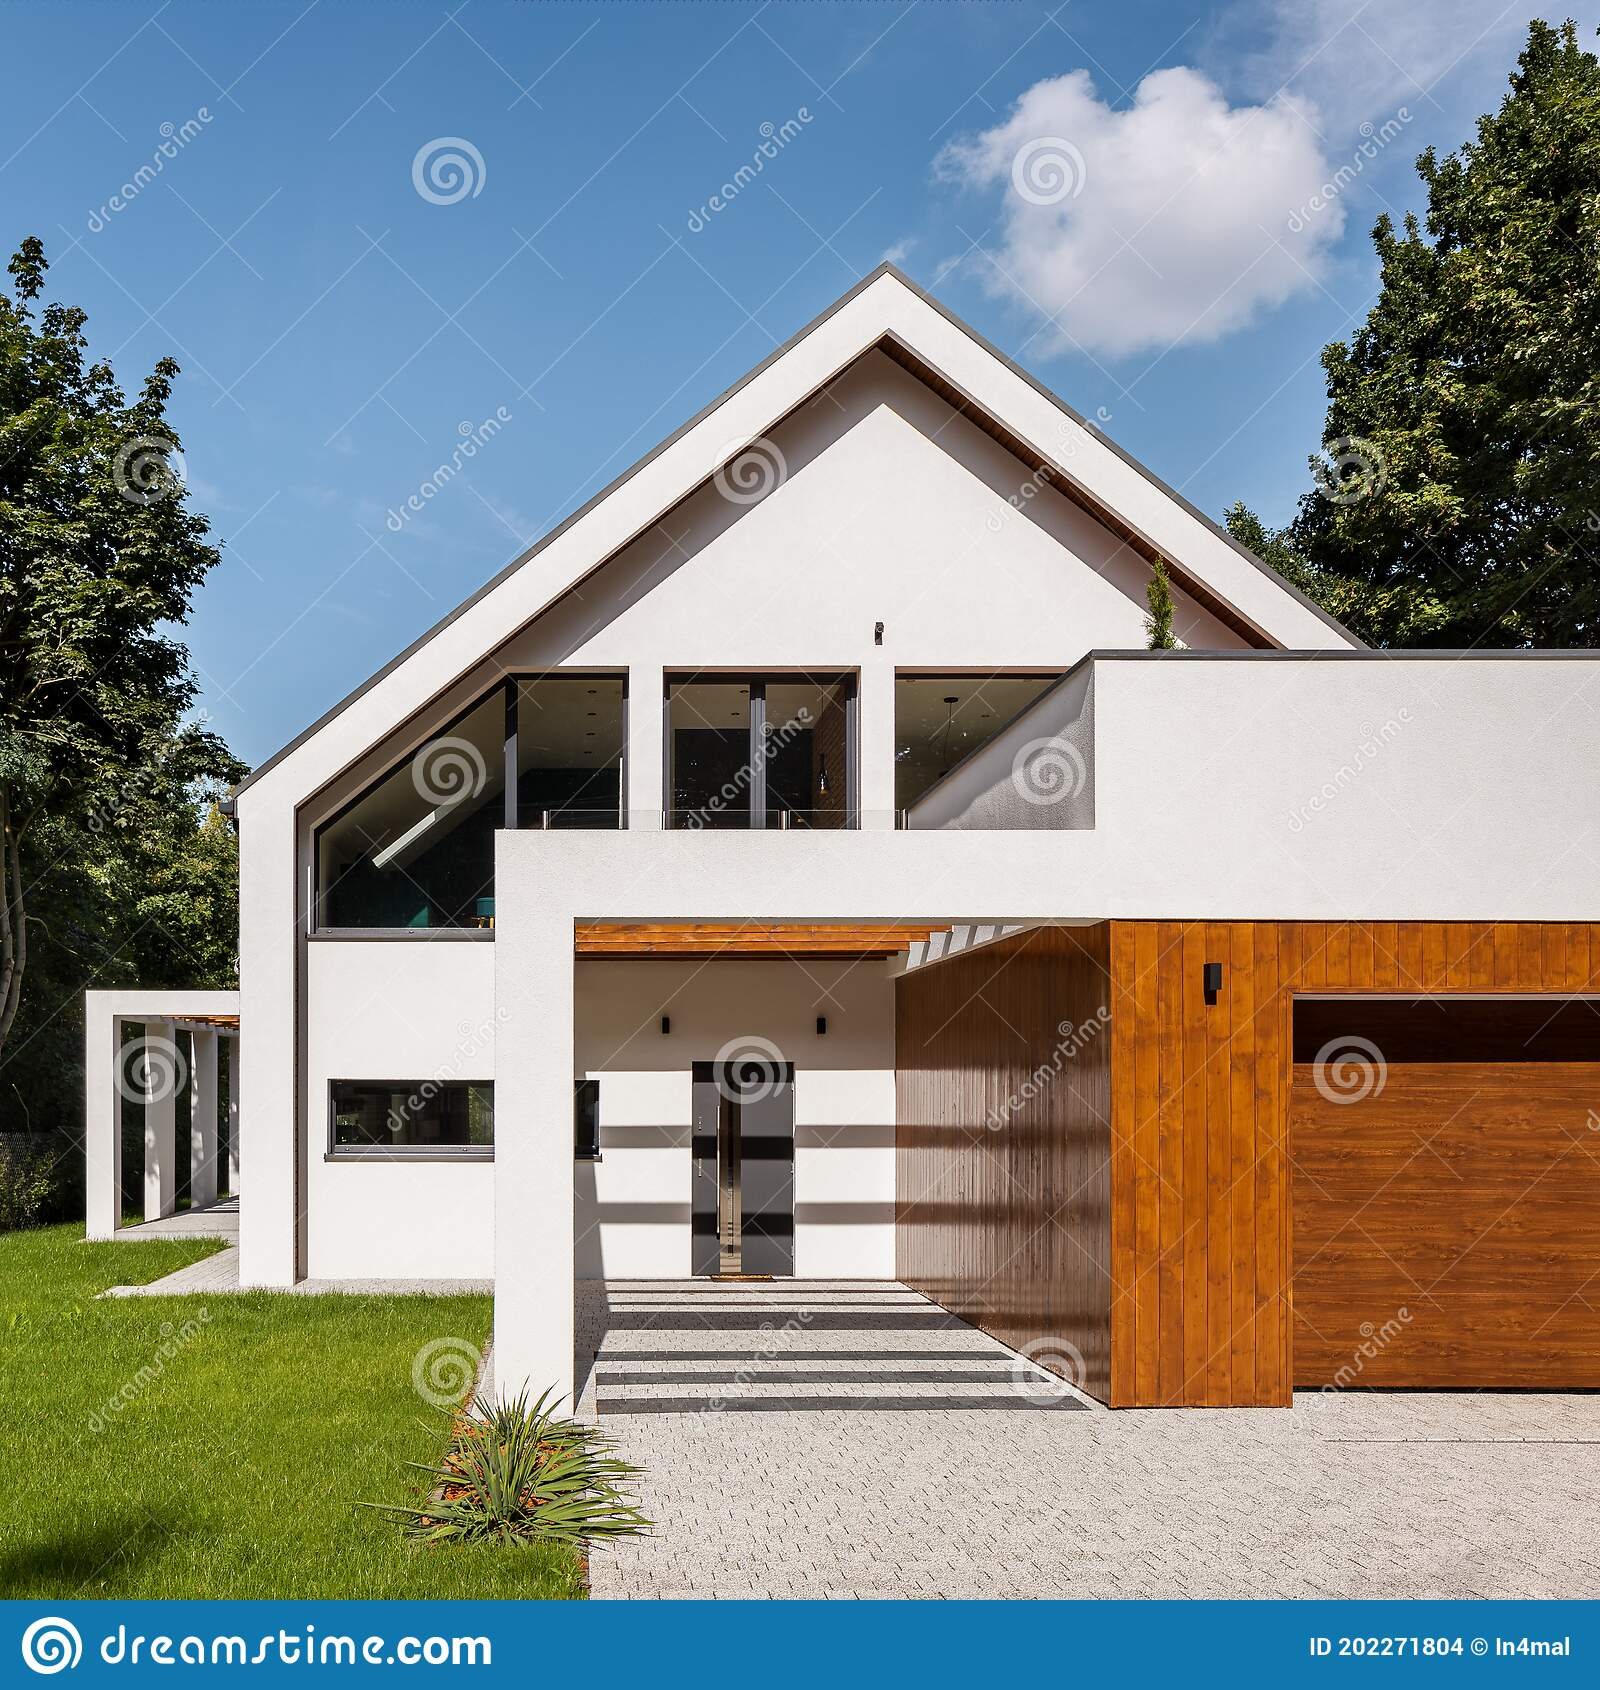 Beautiful House Exterior View Stock Photo Image Of Building Garden 202271804